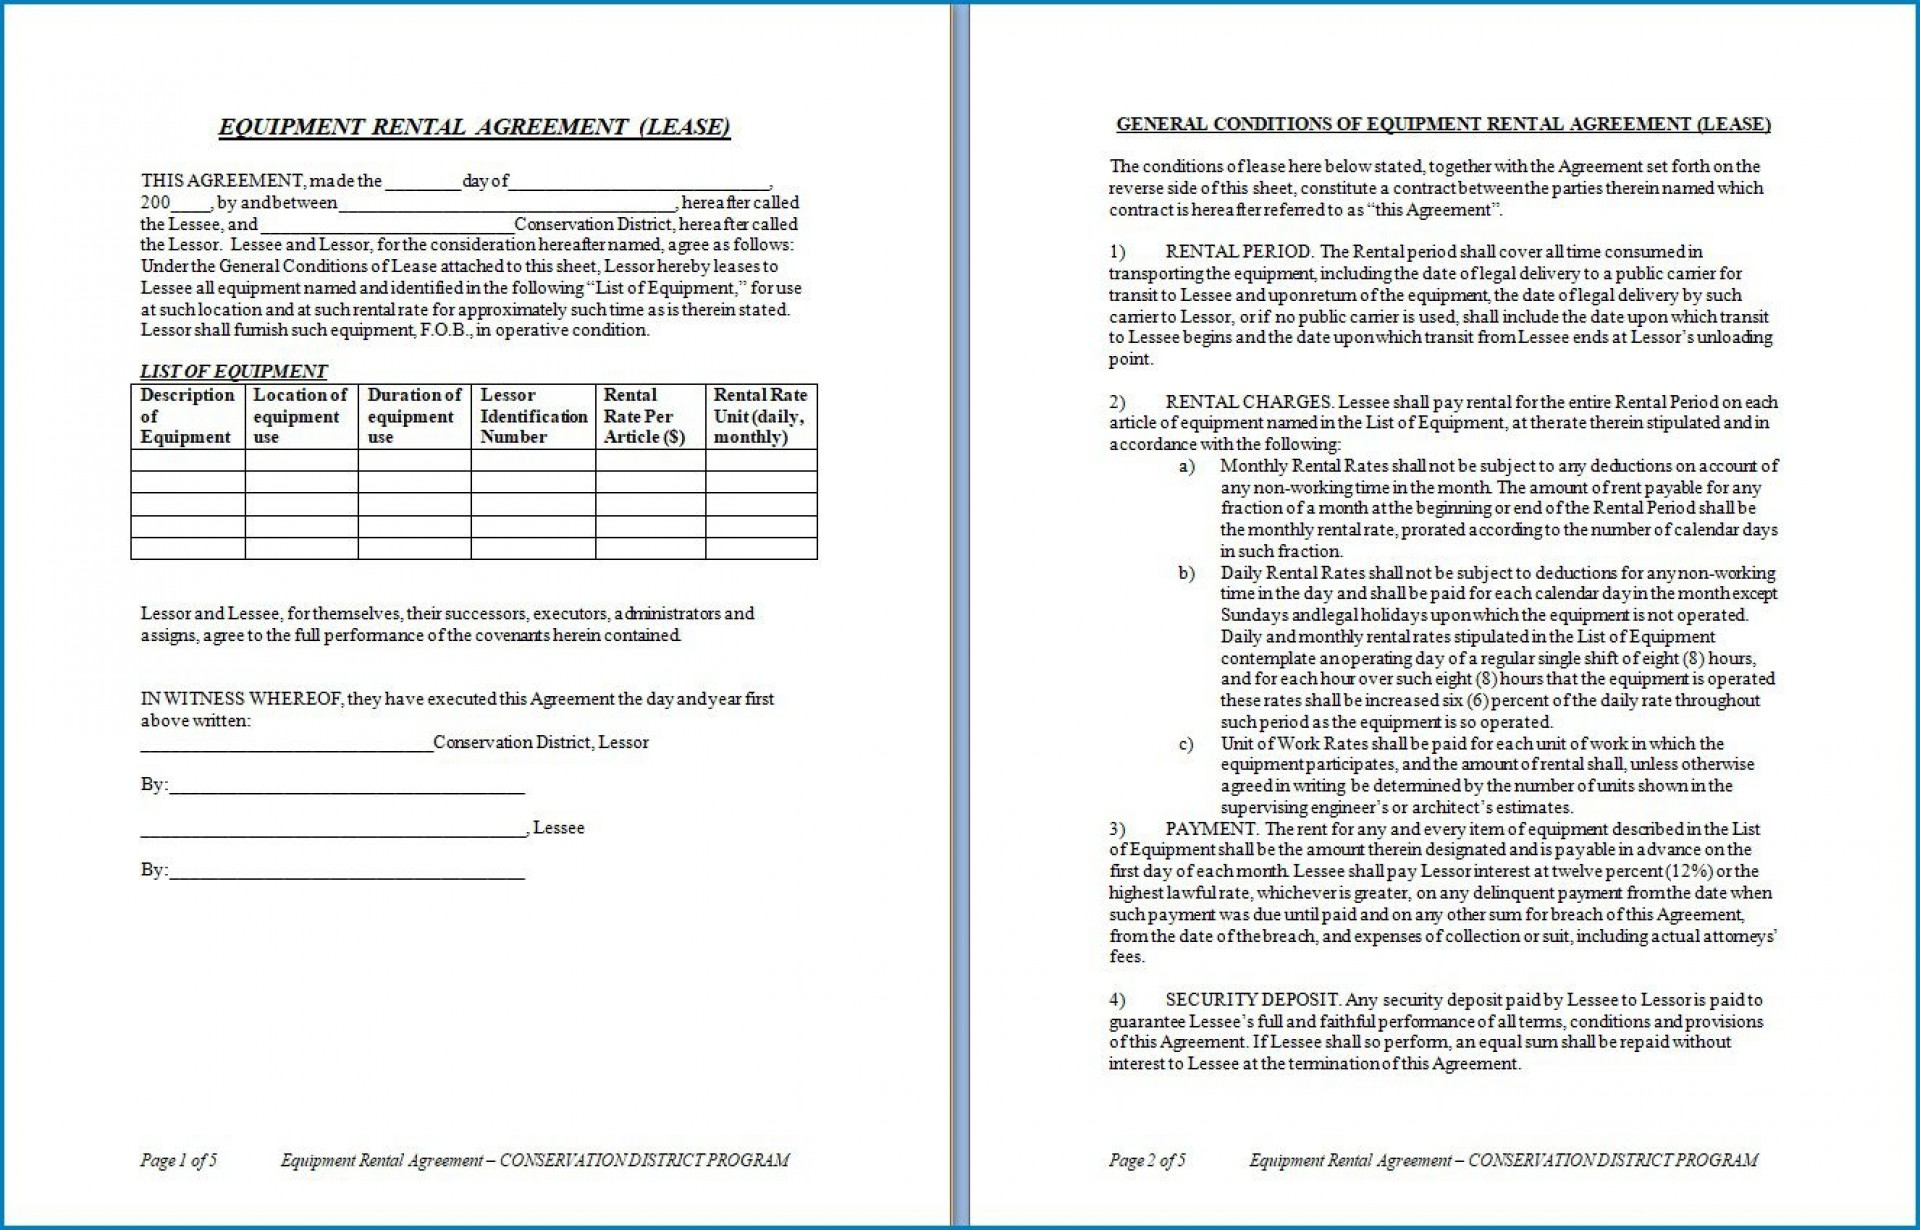 007 Magnificent Equipment Rental Agreement Template High Resolution  Canada Free South Africa Pdf1920